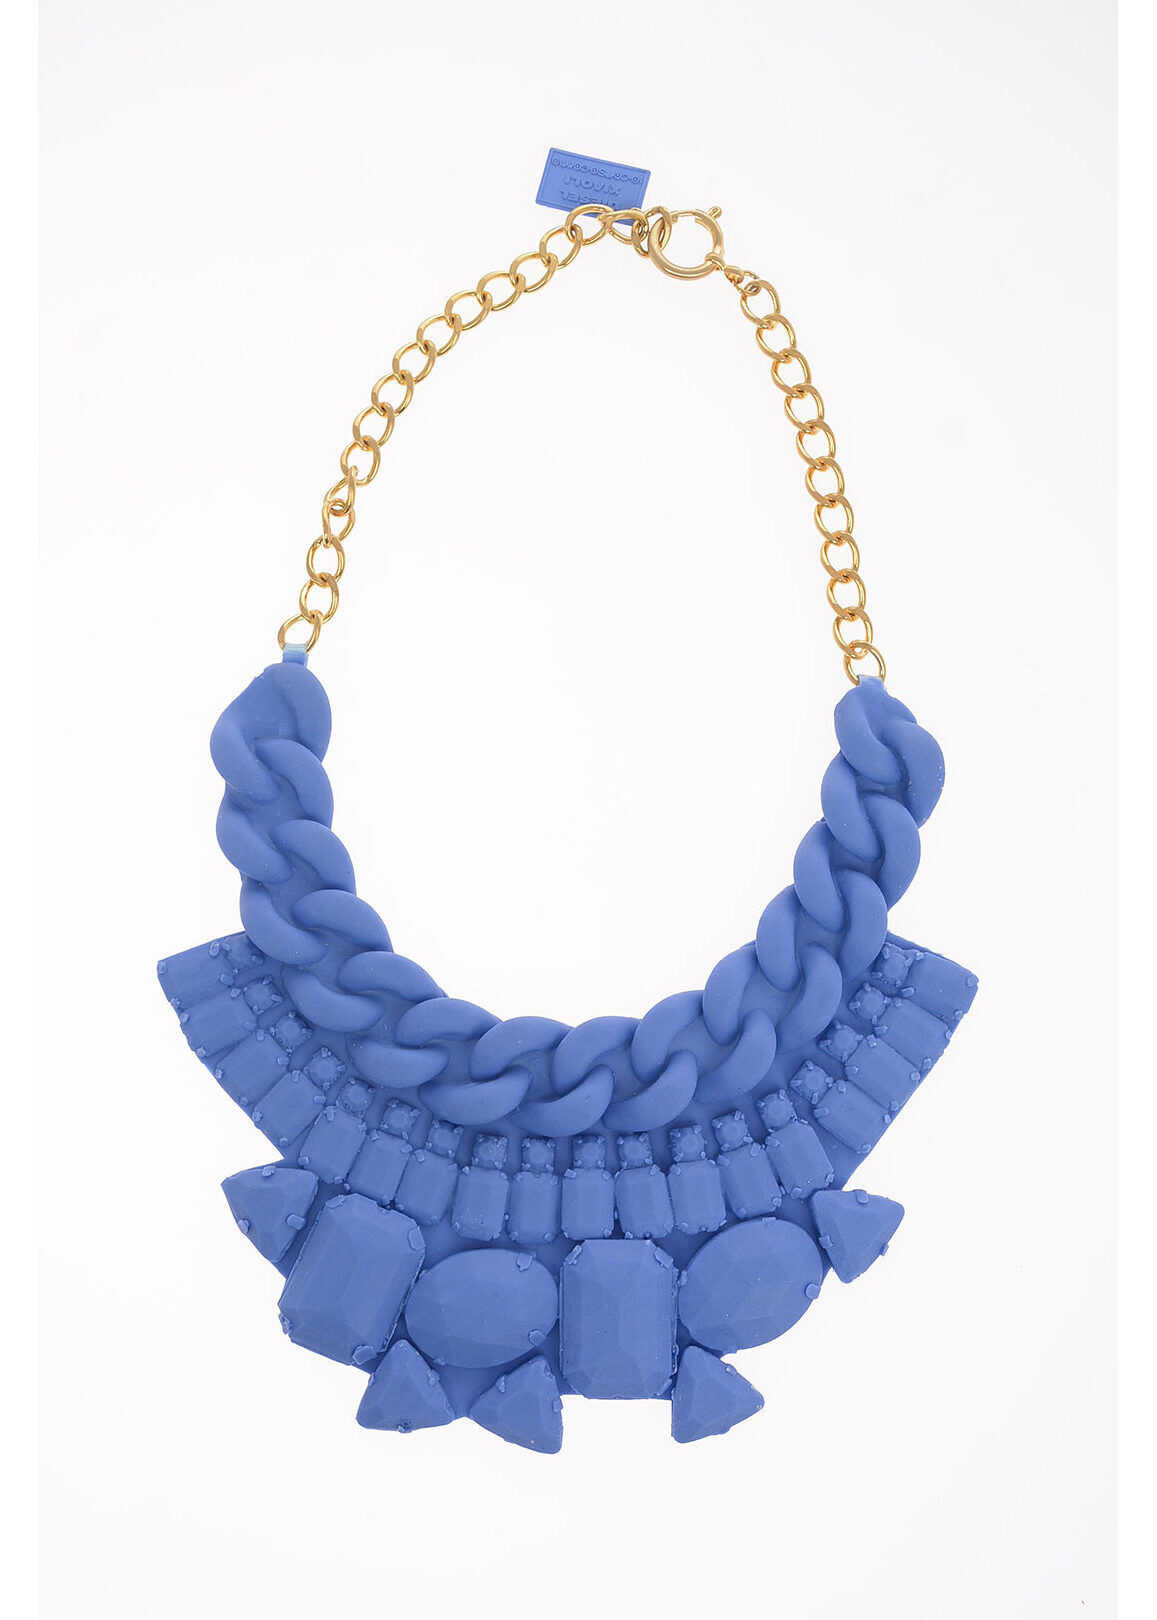 XIAOLI Silicon Necklace with Chain Closure